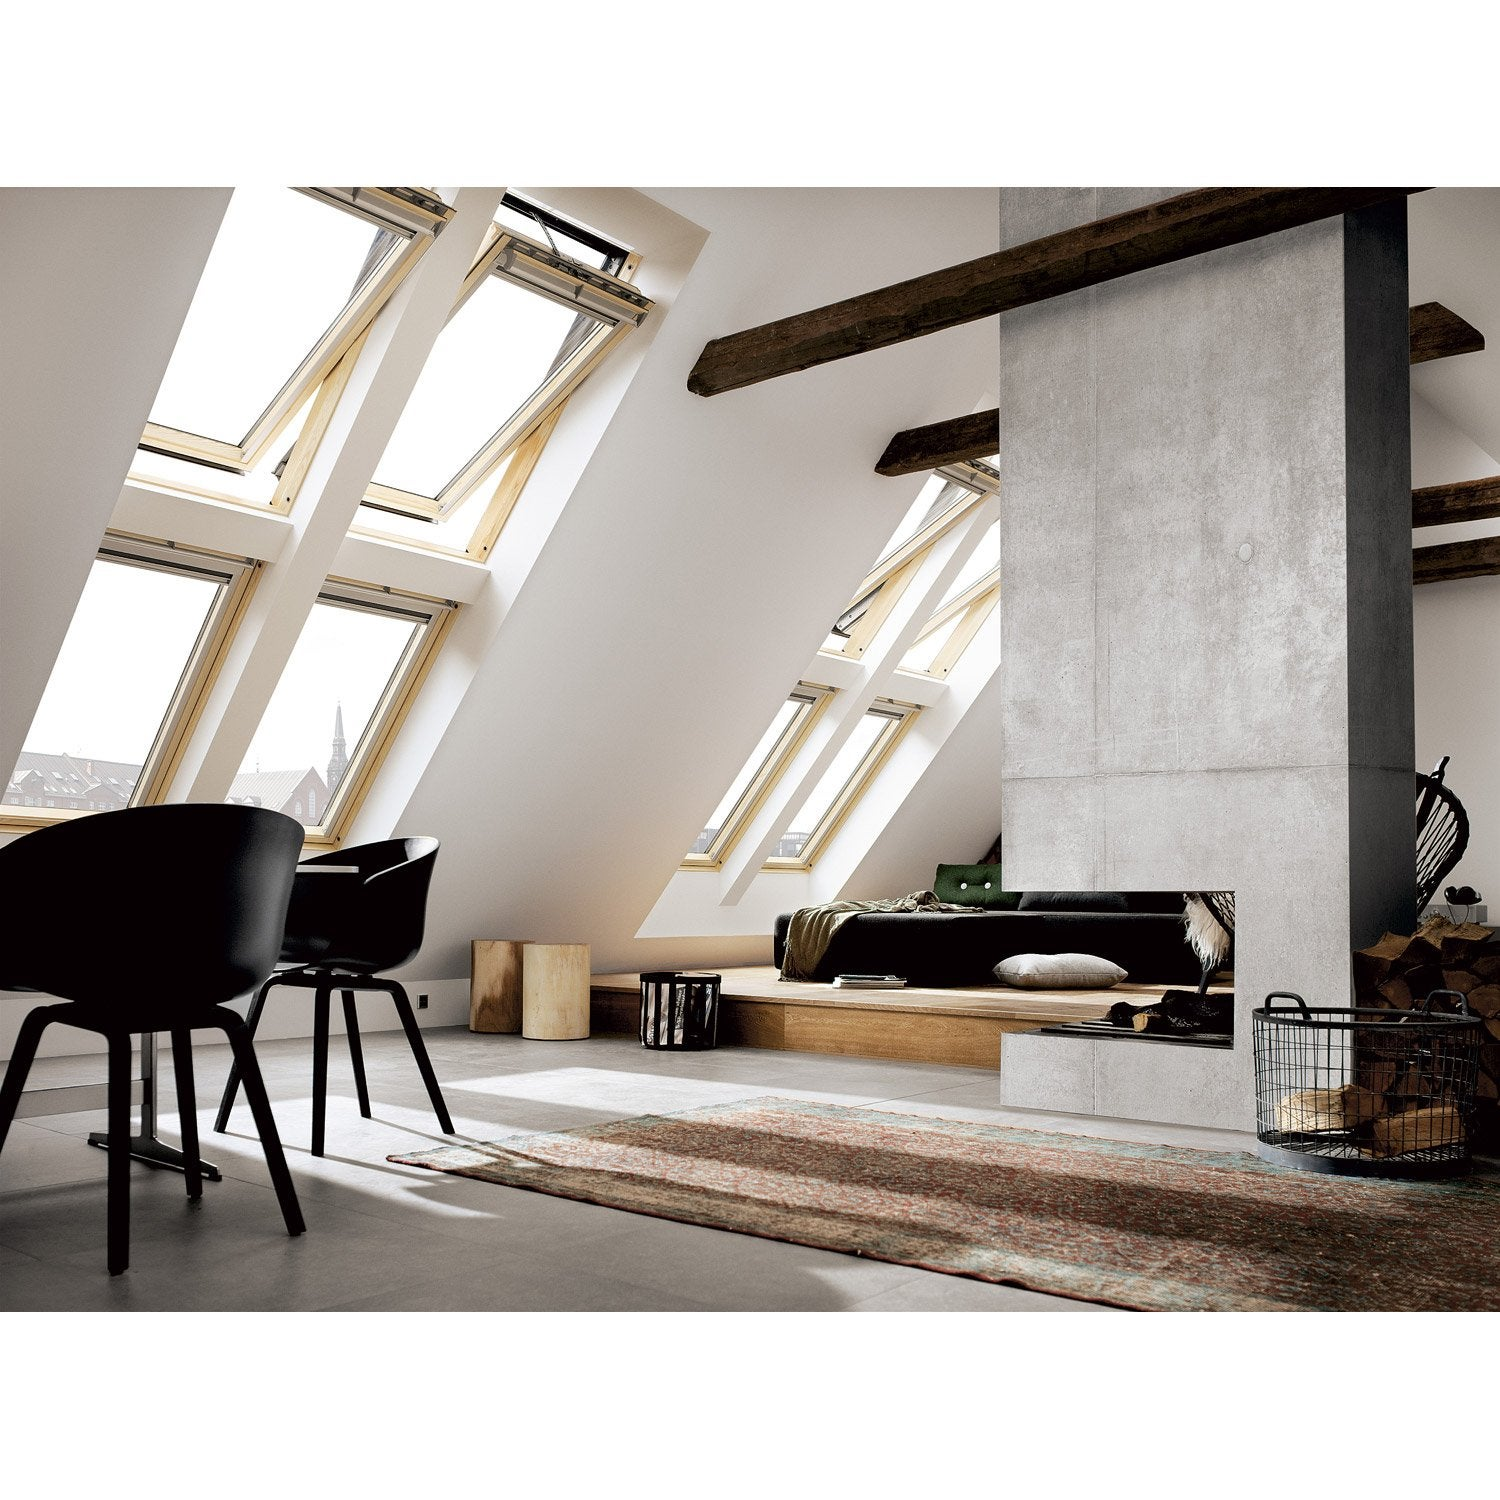 velux ggl mk04 tout confort integra par rotation 78 x 98 cm leroy merlin. Black Bedroom Furniture Sets. Home Design Ideas